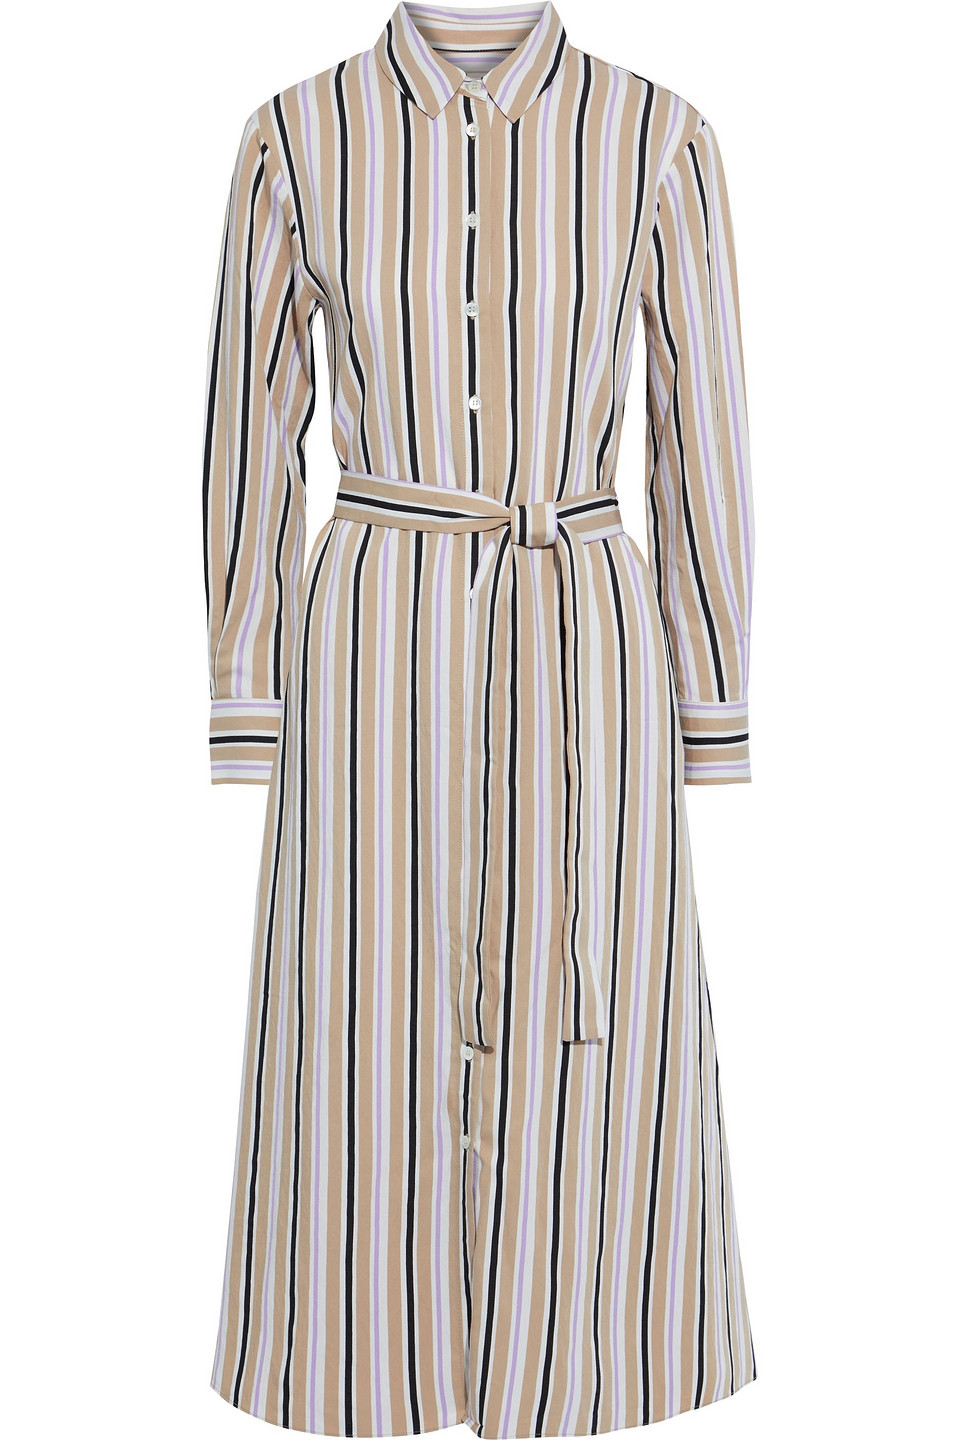 Chinti And Parker | Chinti & Parker Woman Belted Striped Woven Midi Shirt Dress Beige | Clouty